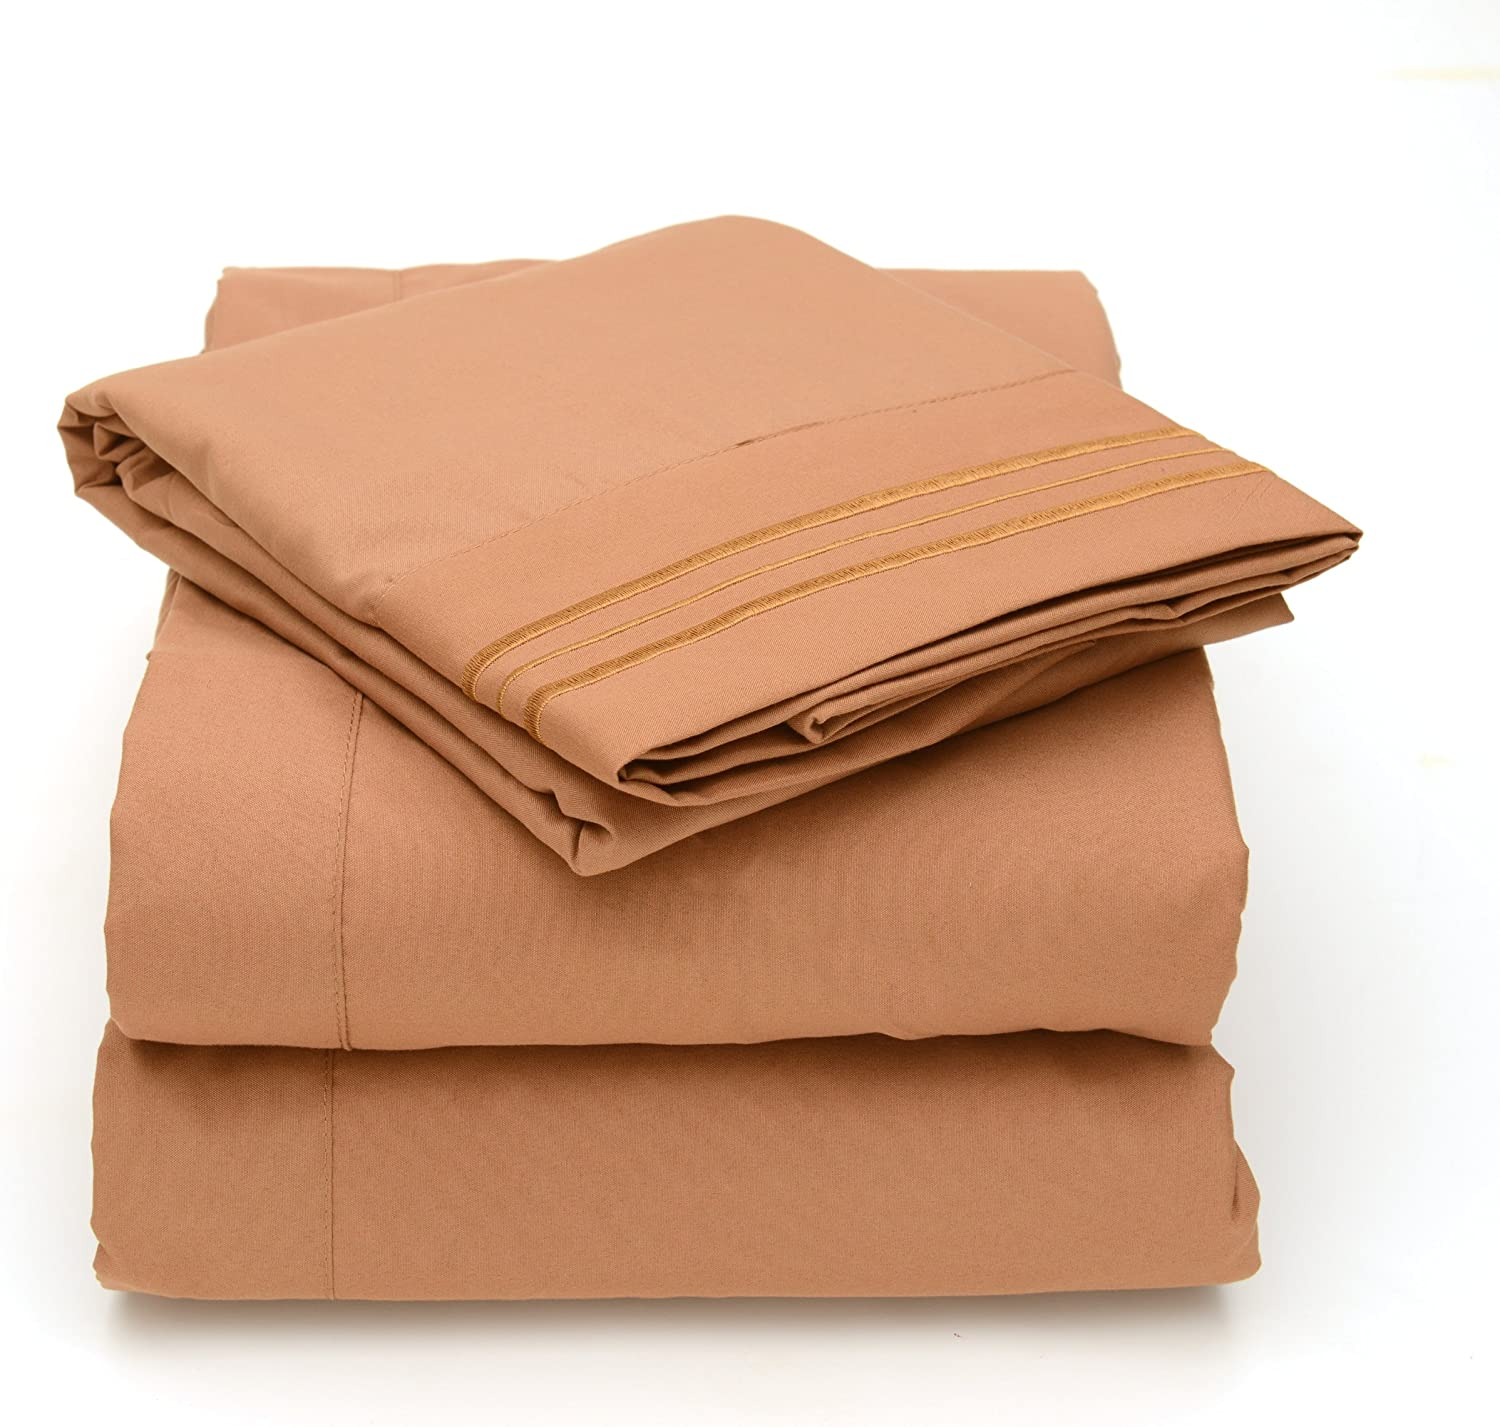 Sweet Home Collection 4 Piece 2000 12 Colors Collection Egyptian Quality Deep Pocket Bed Sheet Set, King, Mocha